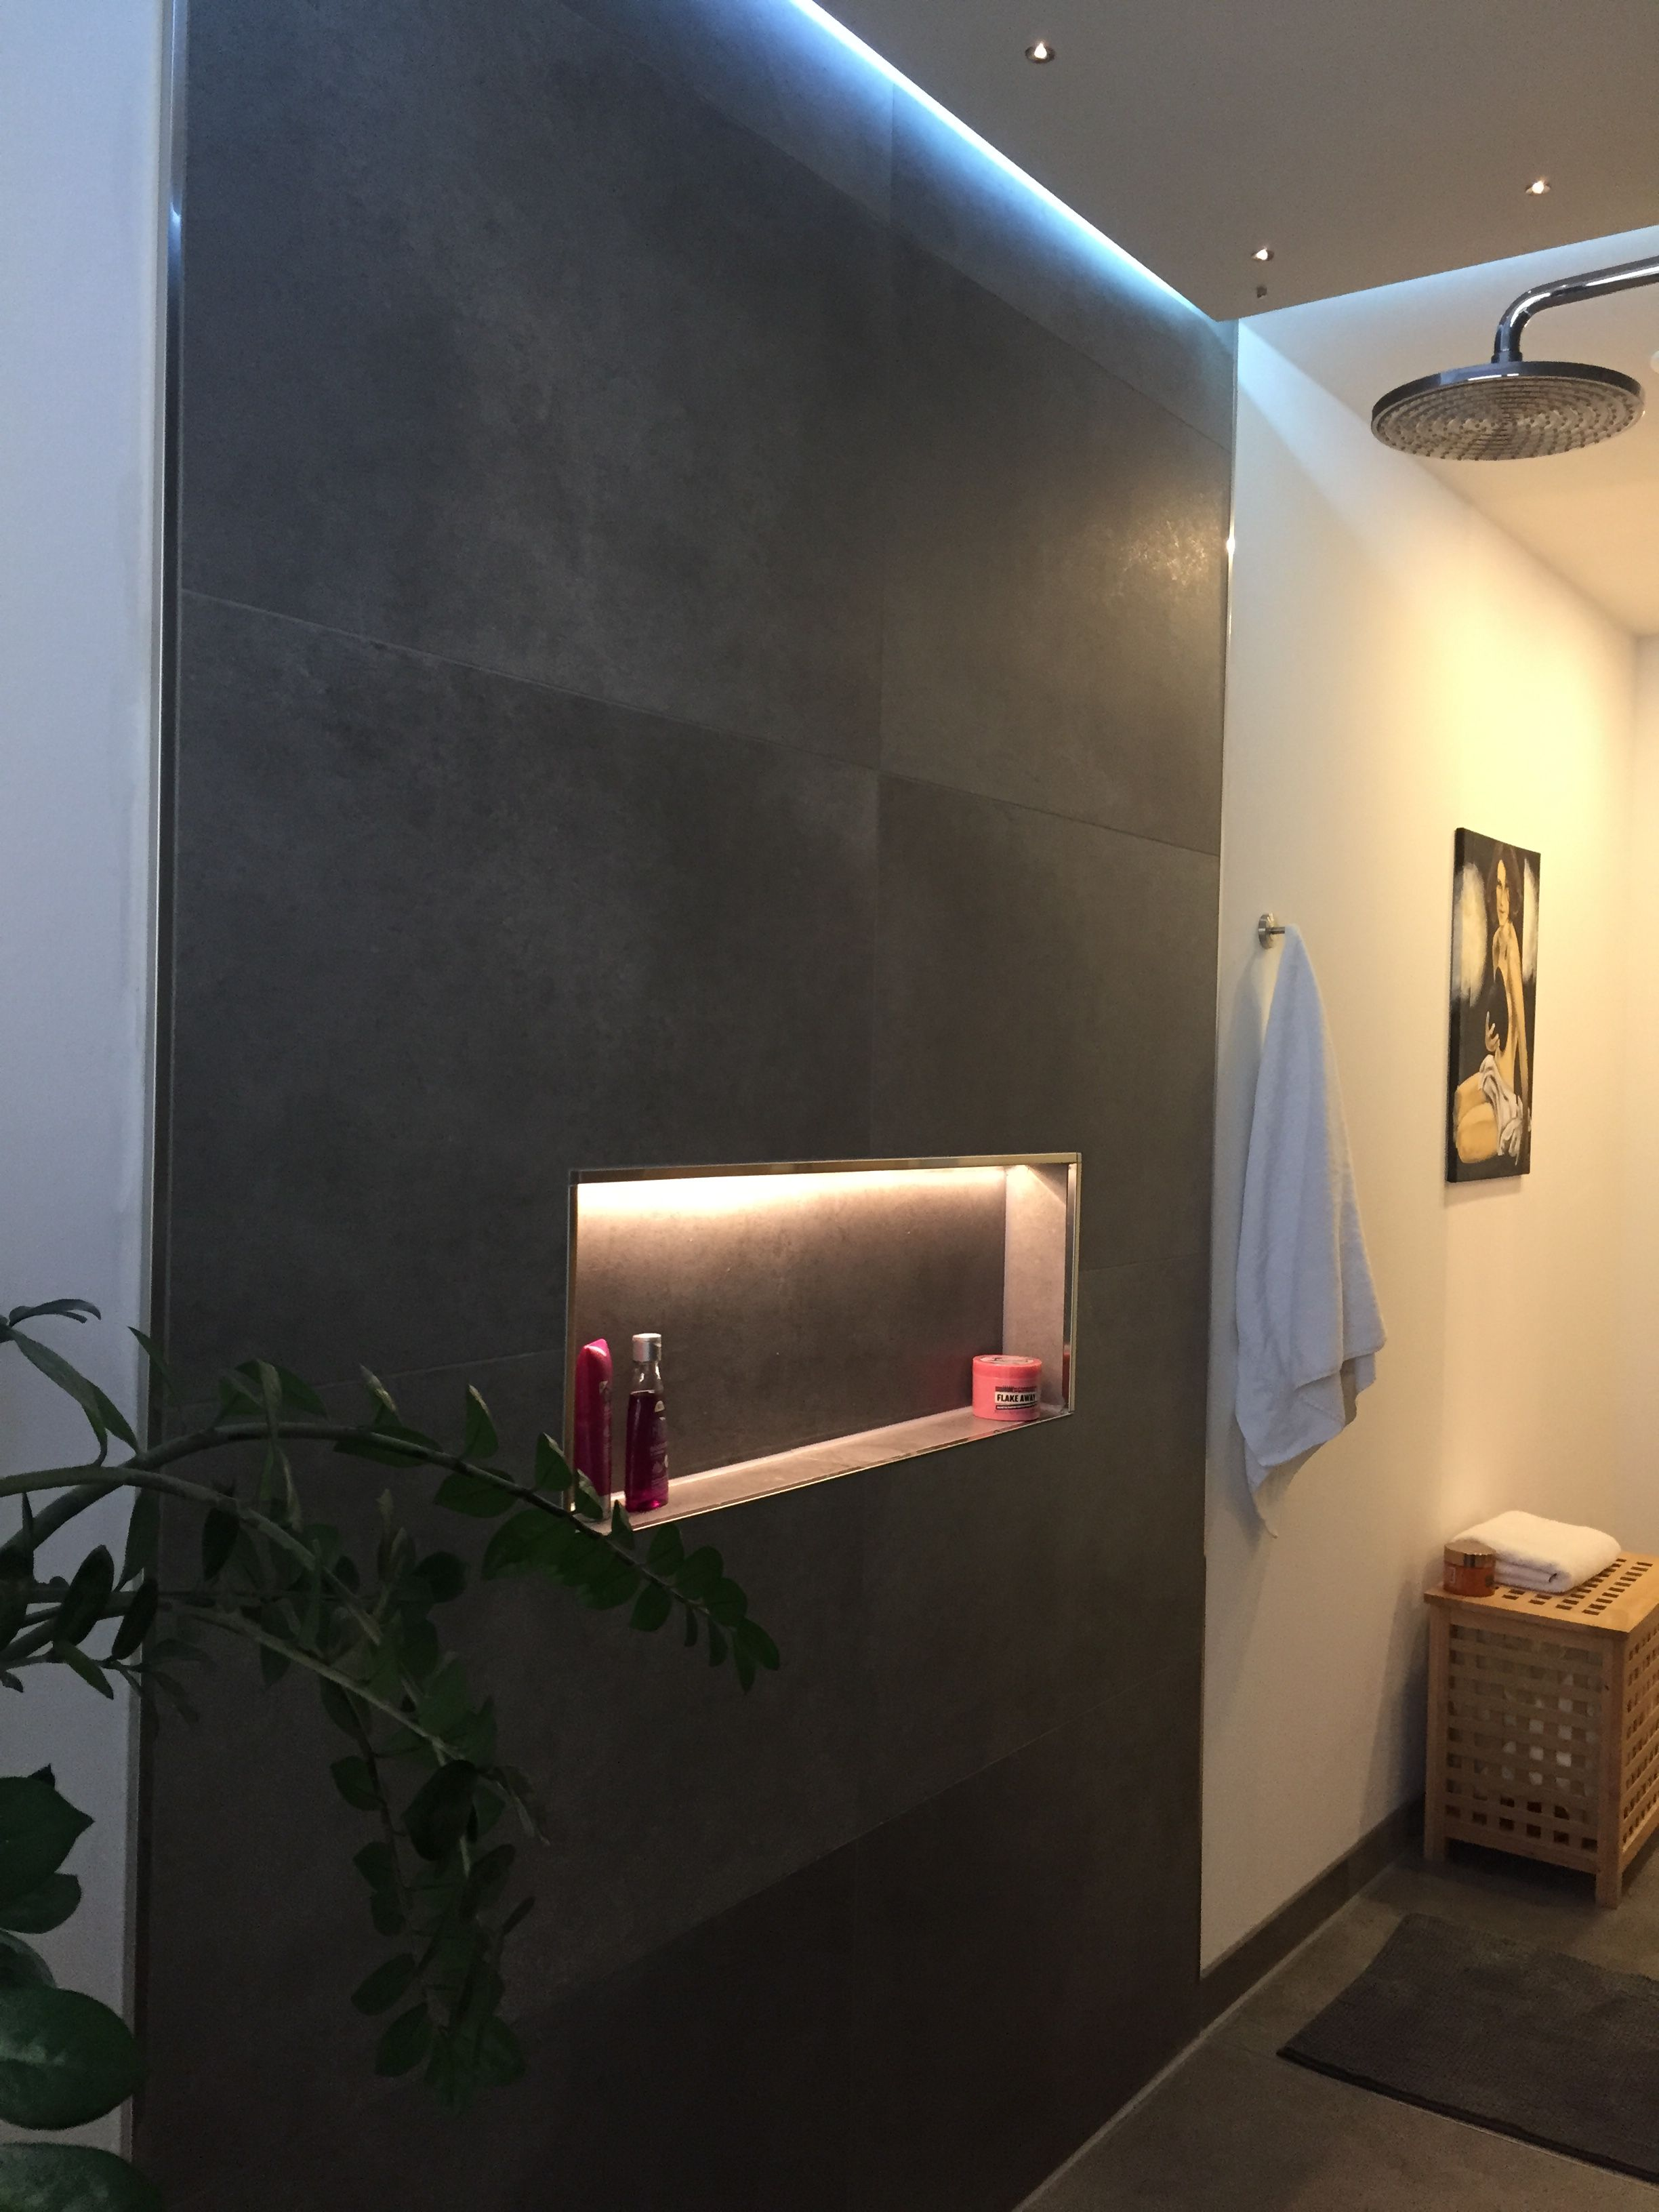 Bathroom, Shower, Light, Indirect, Indirekte Beleuchtung, Abkastung, LED,  Badezimmer